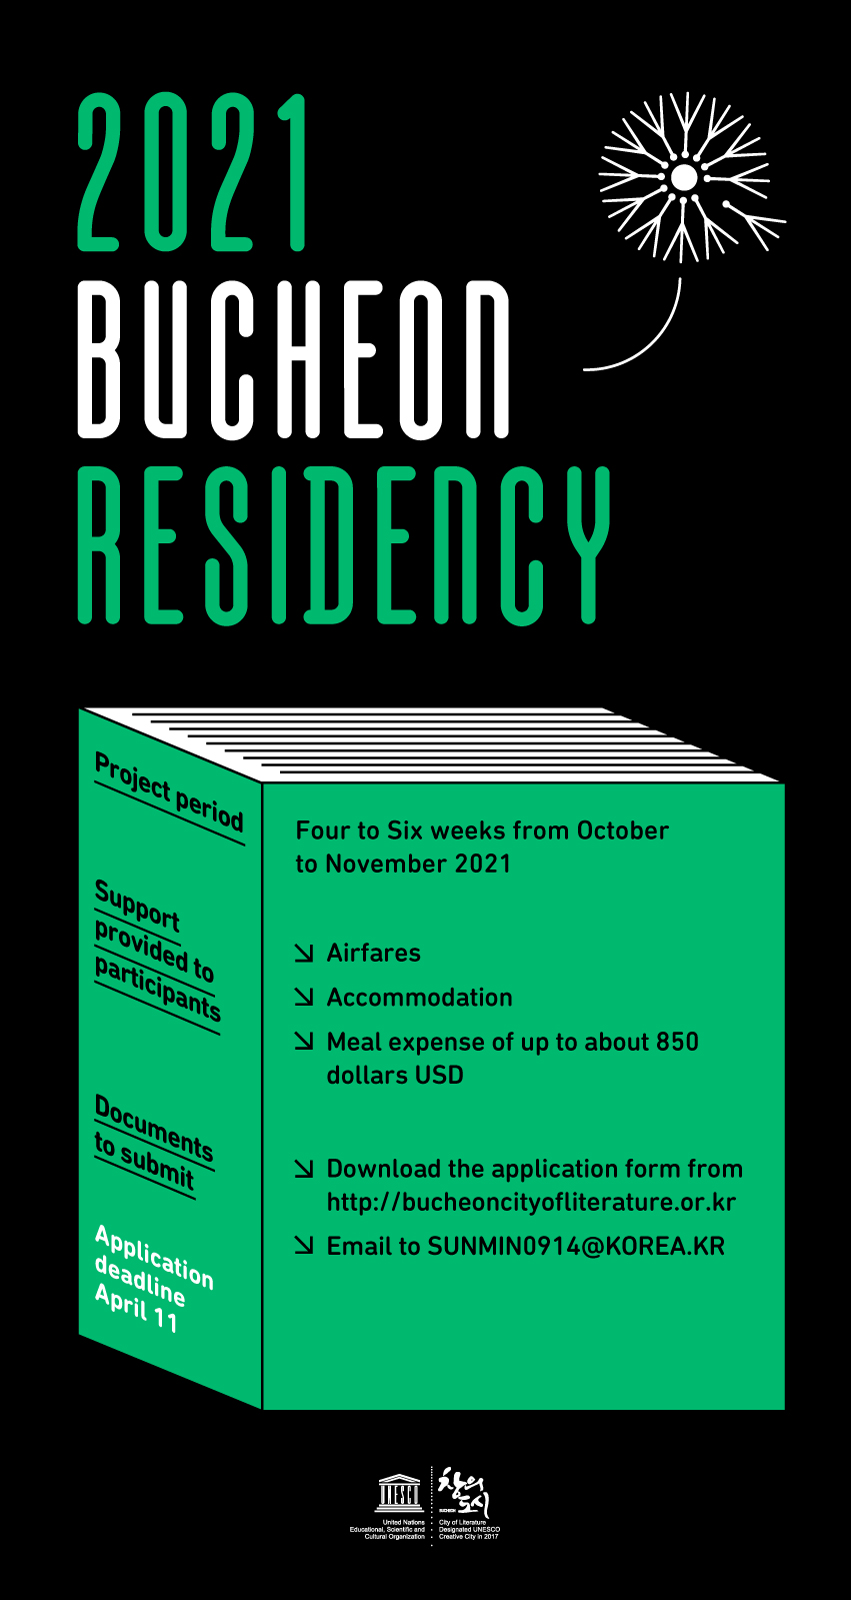 2021 Bucheon Residency poster, text written on green book reads: project period (4-6 weeks from October -November 2021). Support provided to participants (airfares, accommodation, meal expense of up $850), documents to submit (details in article). Application deadline April 11